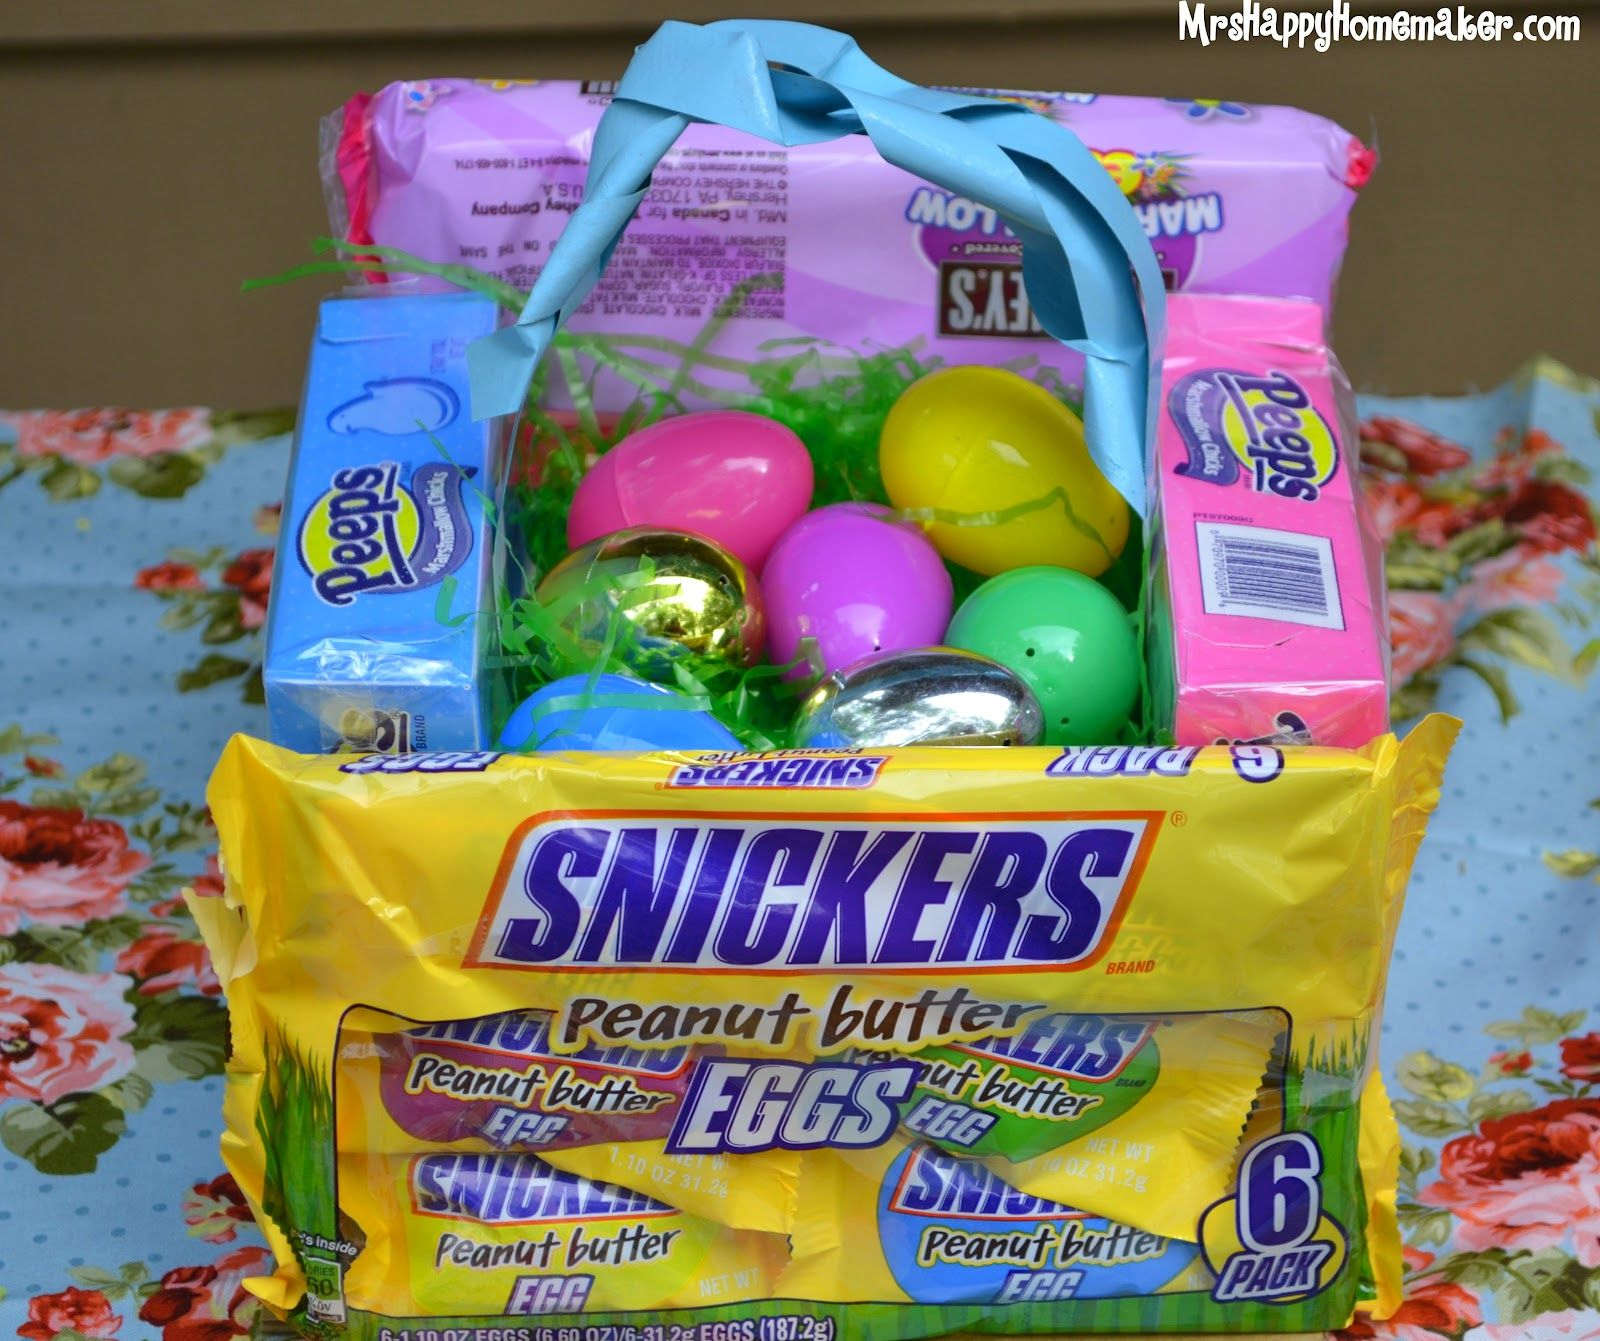 Edible easter baskets mrs happy homemaker www edible easter baskets mrs happy homemaker mrsshappyhomemaker easterbaskets negle Images